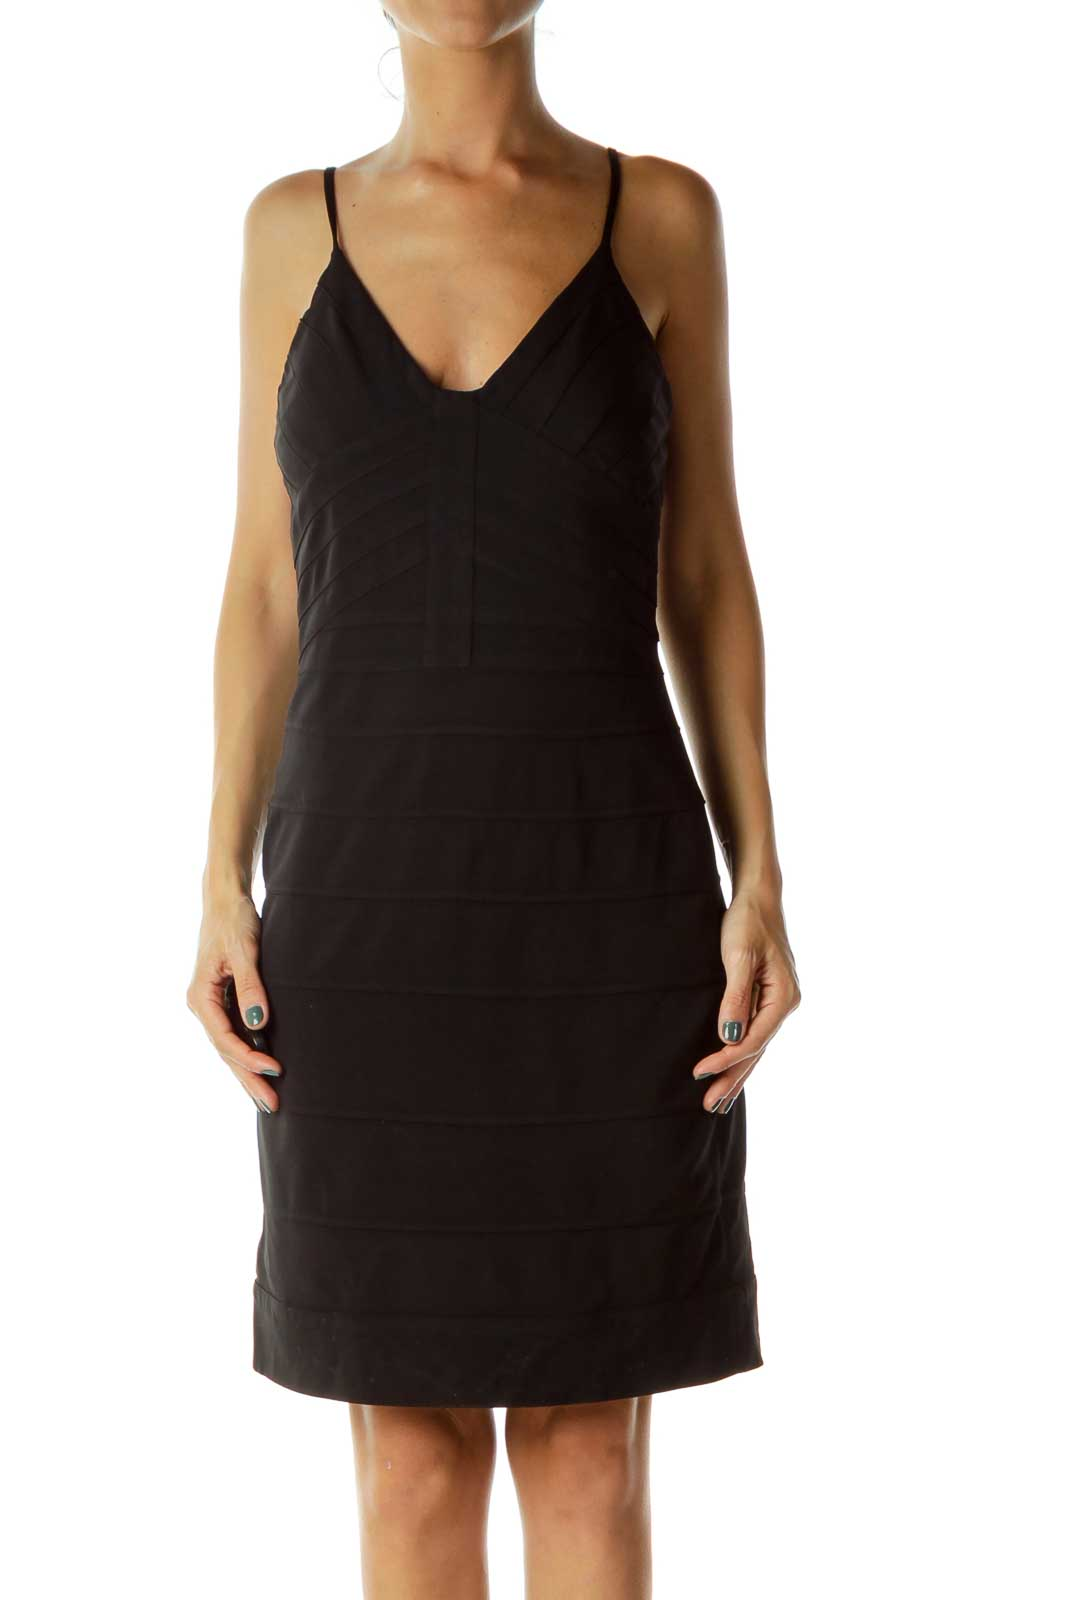 Black Stitched Bodycon Cocktail Dress Front